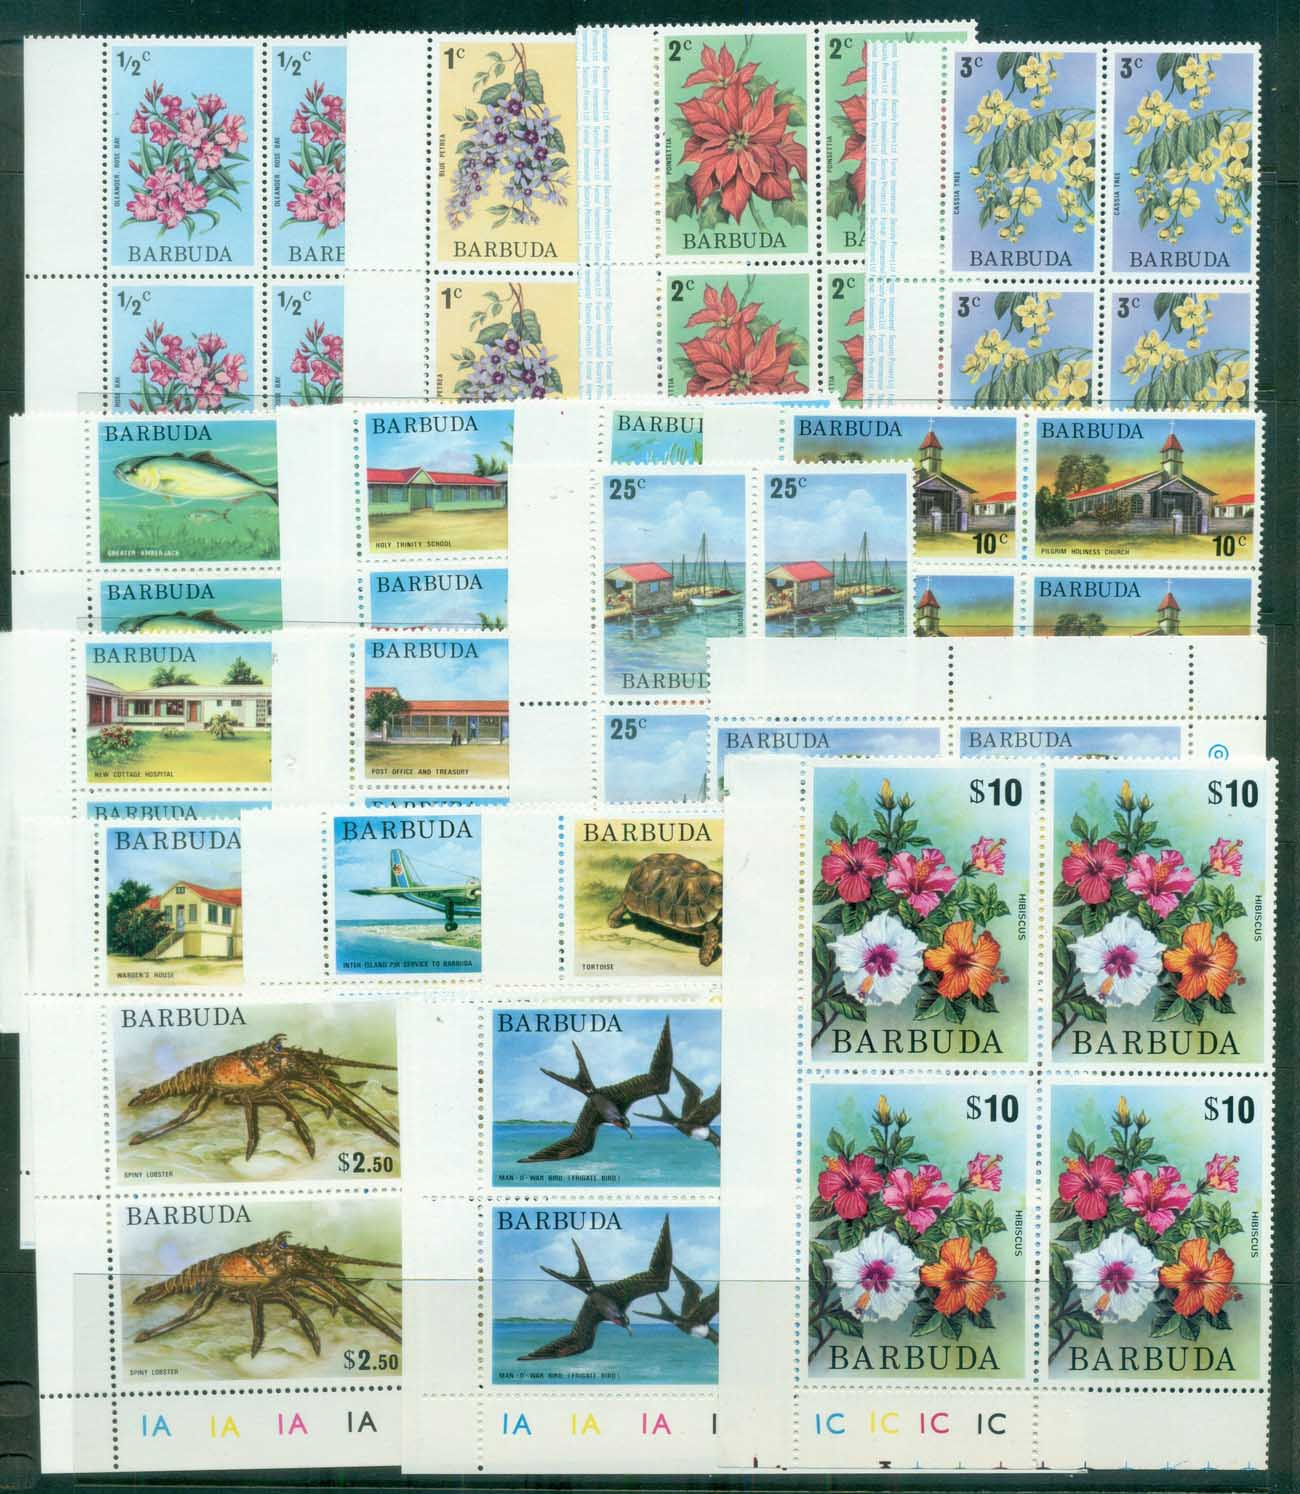 Barbuda 1974-75 Pictorials, Flowers, Bird Blk 4 MUH